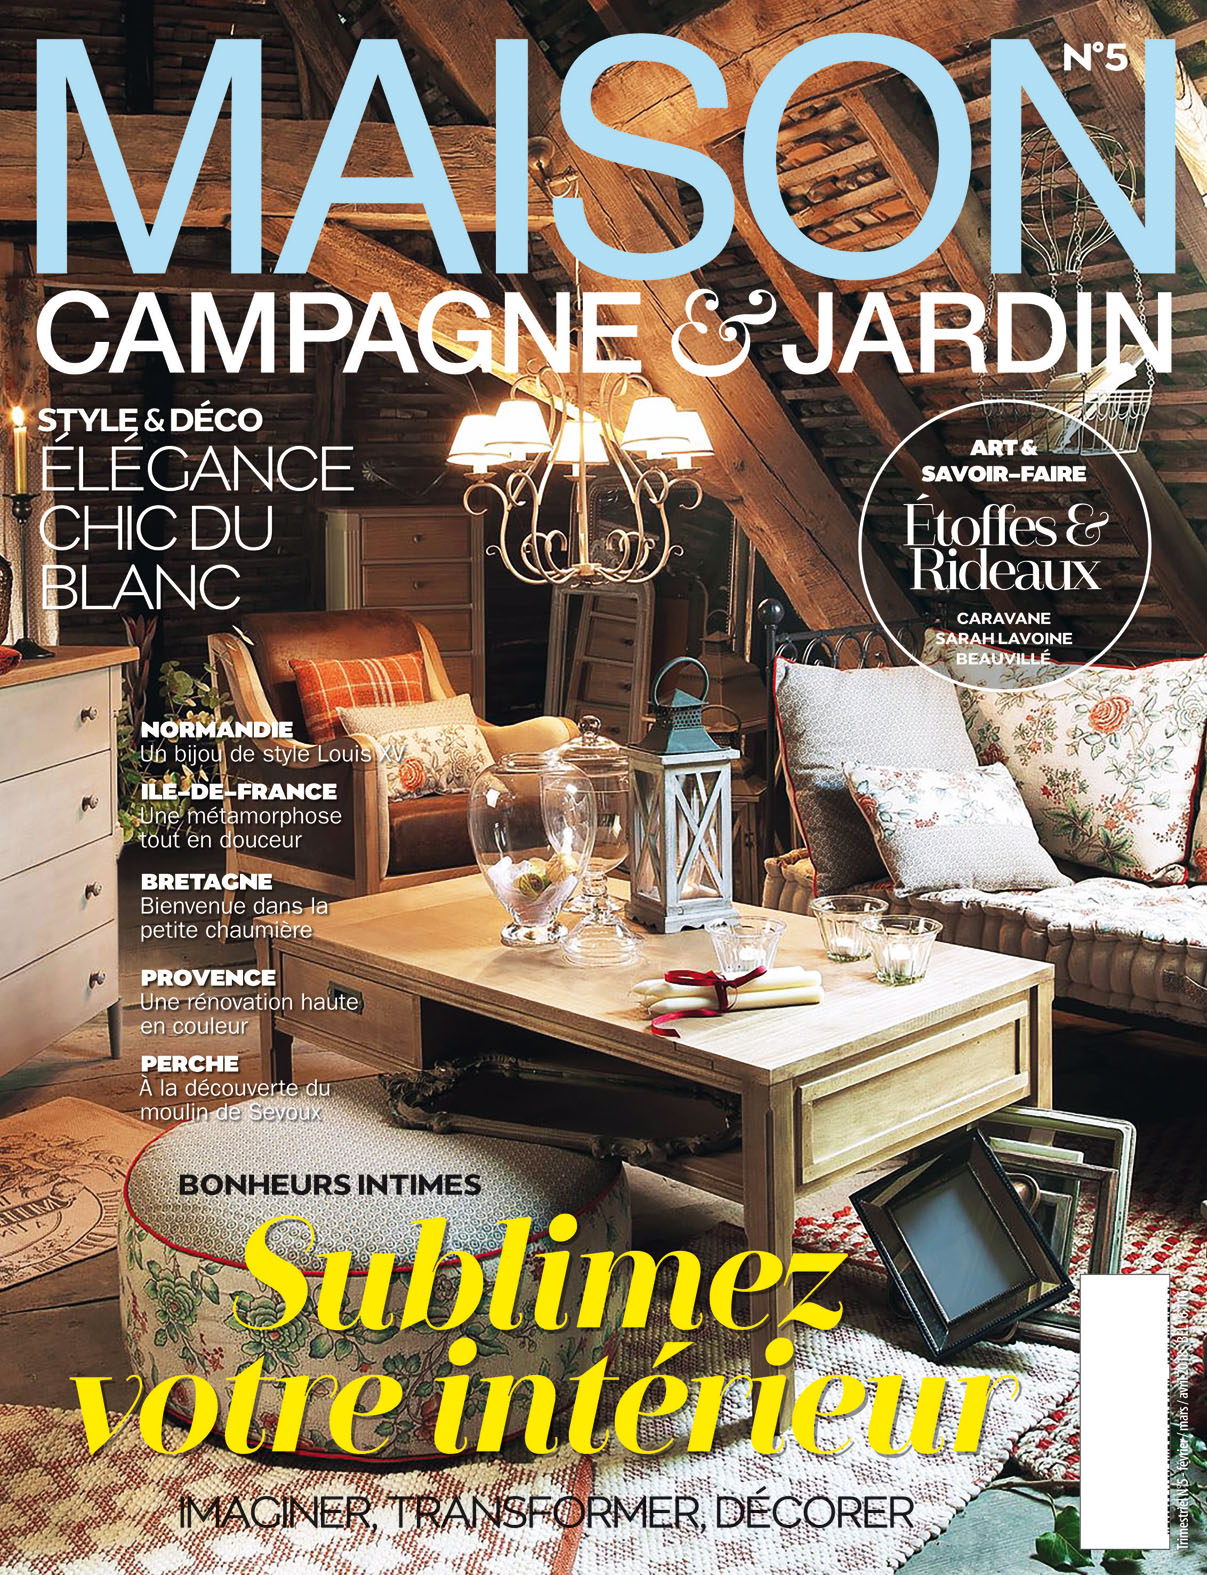 Style Campagne Magazine Maison Campagne Et Jardin N05